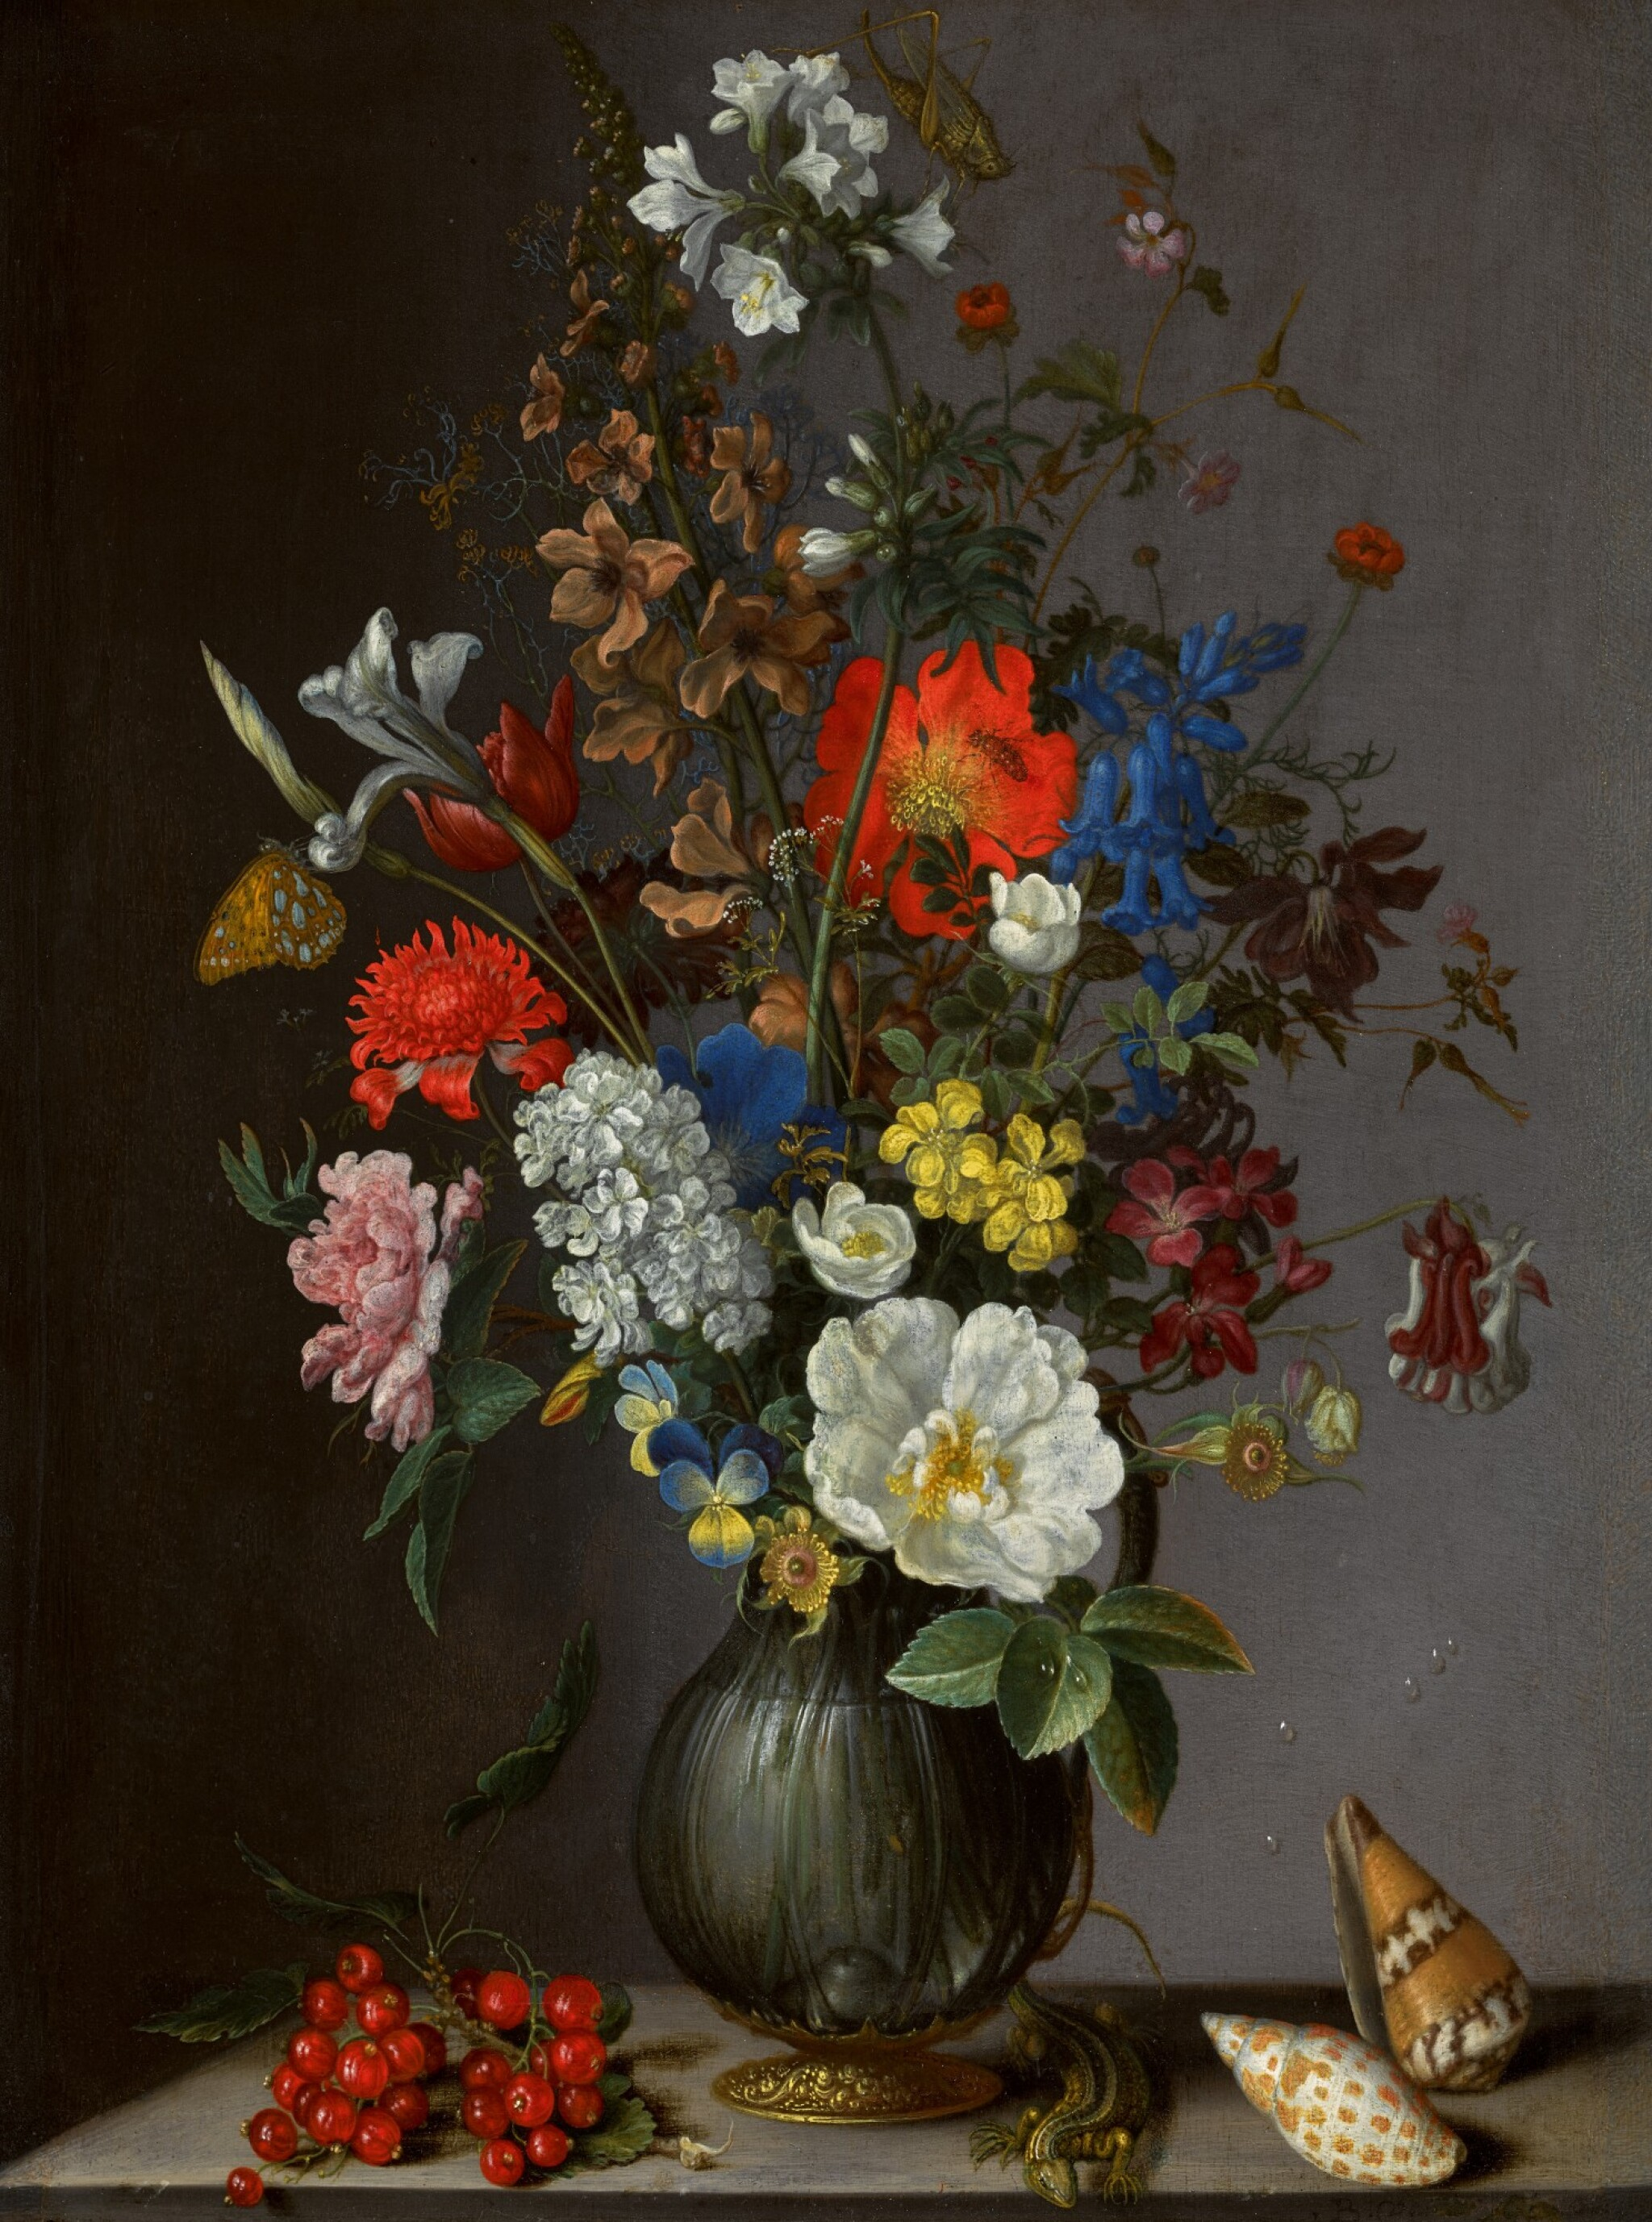 View full screen - View 1 of Lot 19. Flowers in a vase on a stone ledge, with redcurrants and shells | 《靜物:石架上的瓶花、紅加侖子與貝殼》.